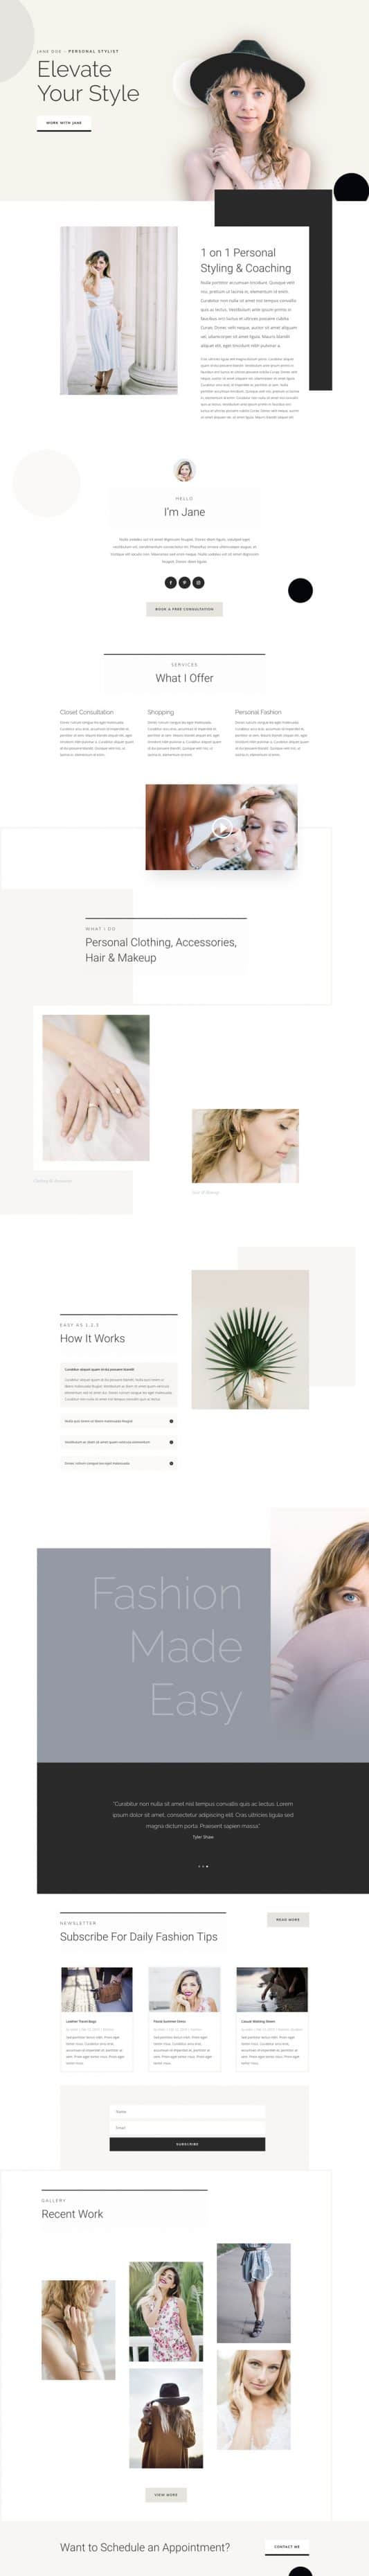 Personal Stylist Web Design 5